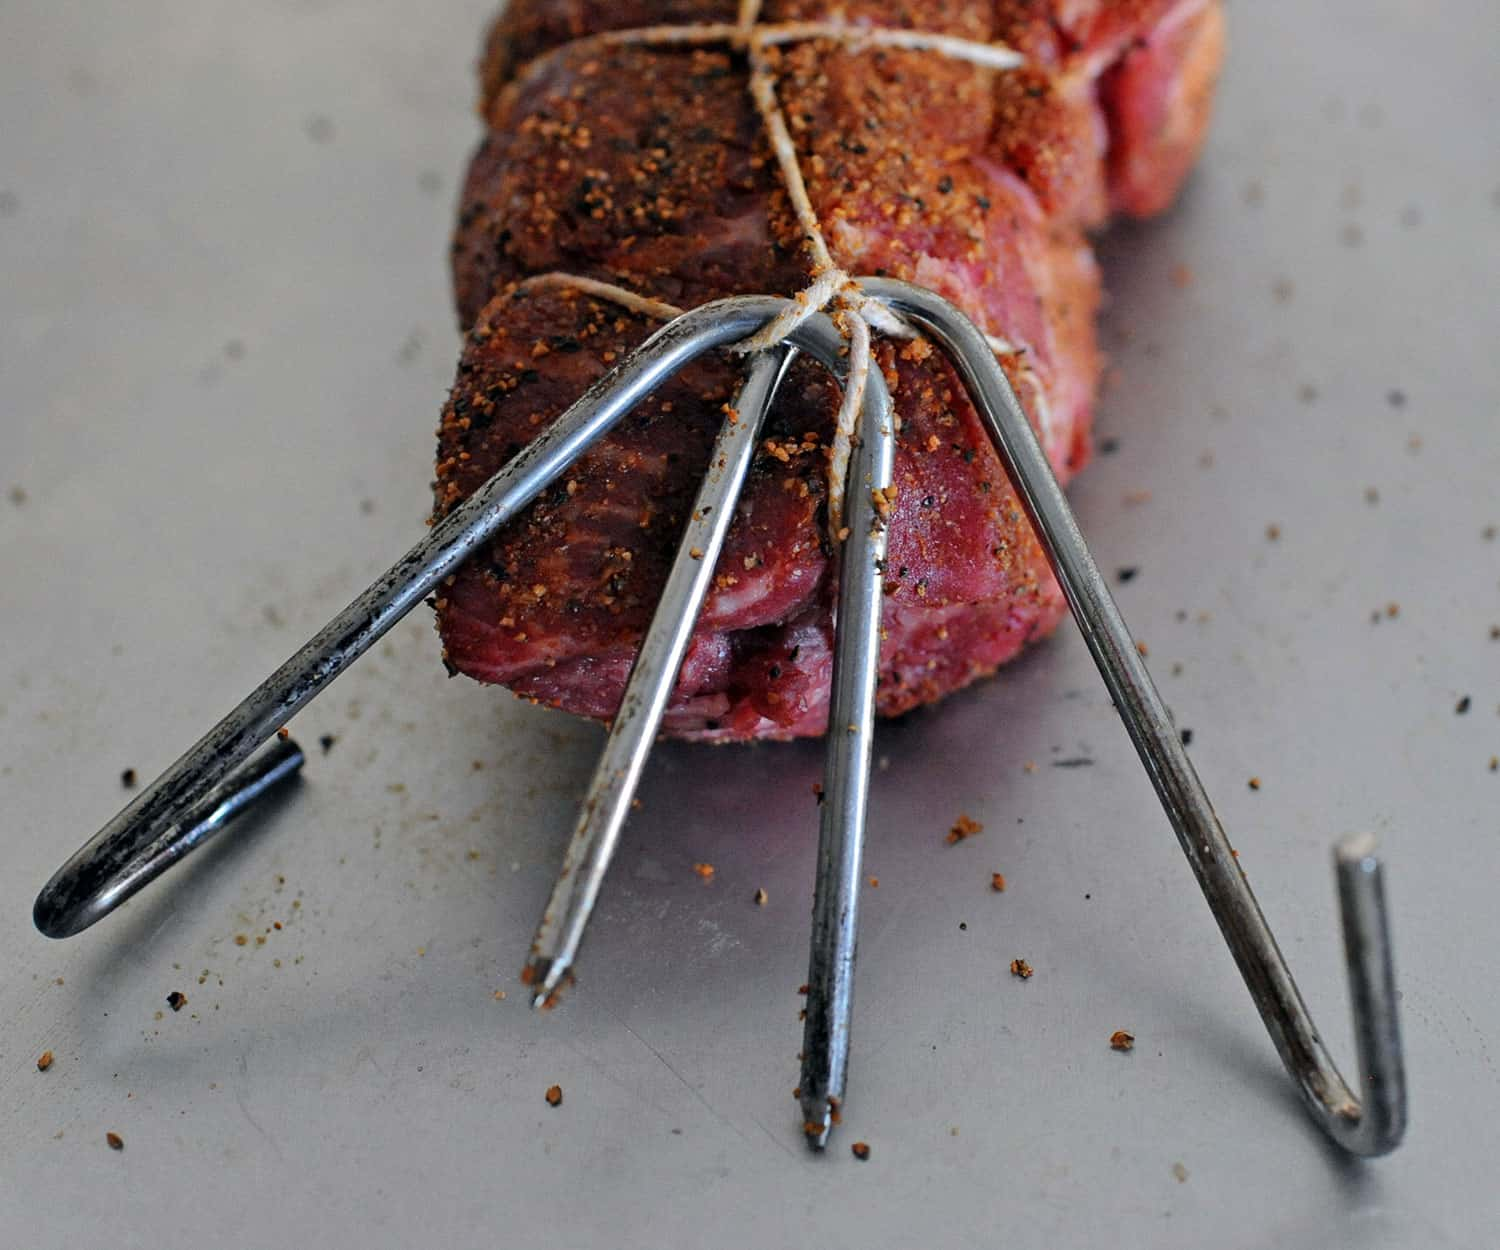 metal meat hooks in twine wrapped around beef